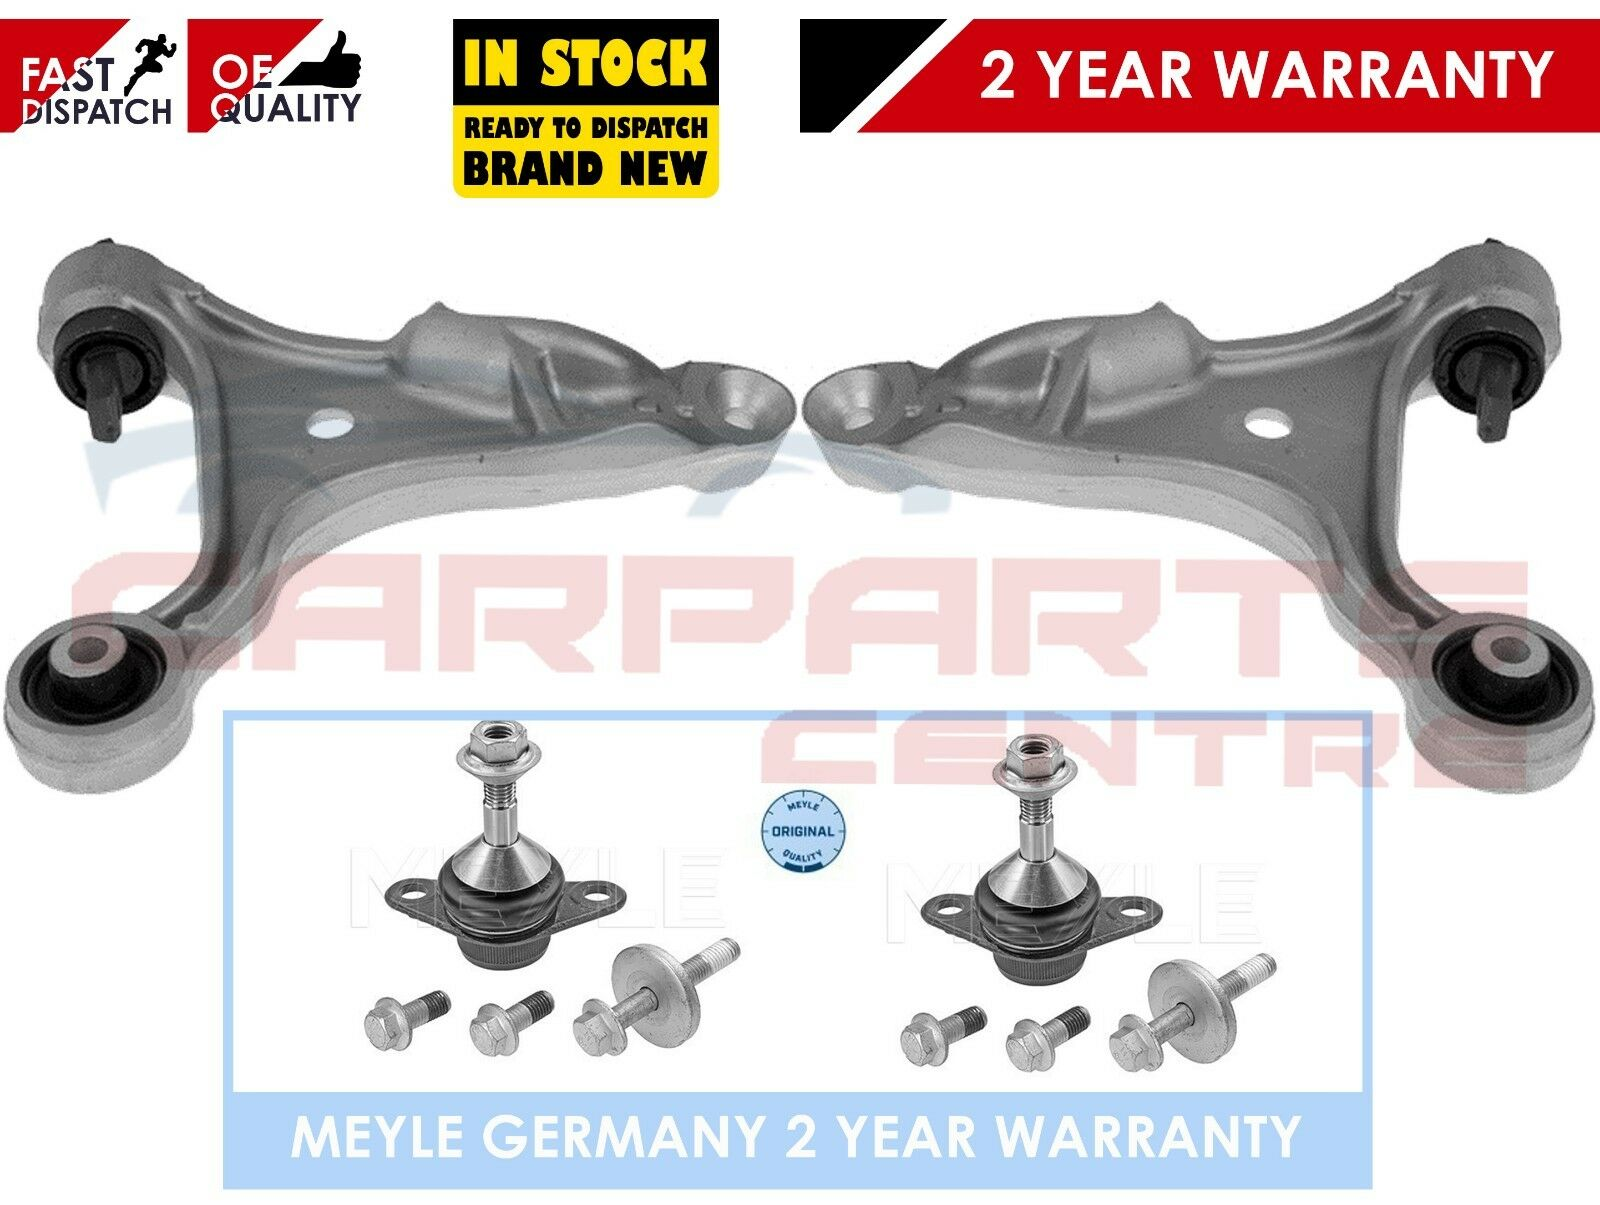 VOLVO S60 V70 TURBO TURBO DIESEL FRONT LOWER ARMS /& BALL JOINTS X 2 NEW